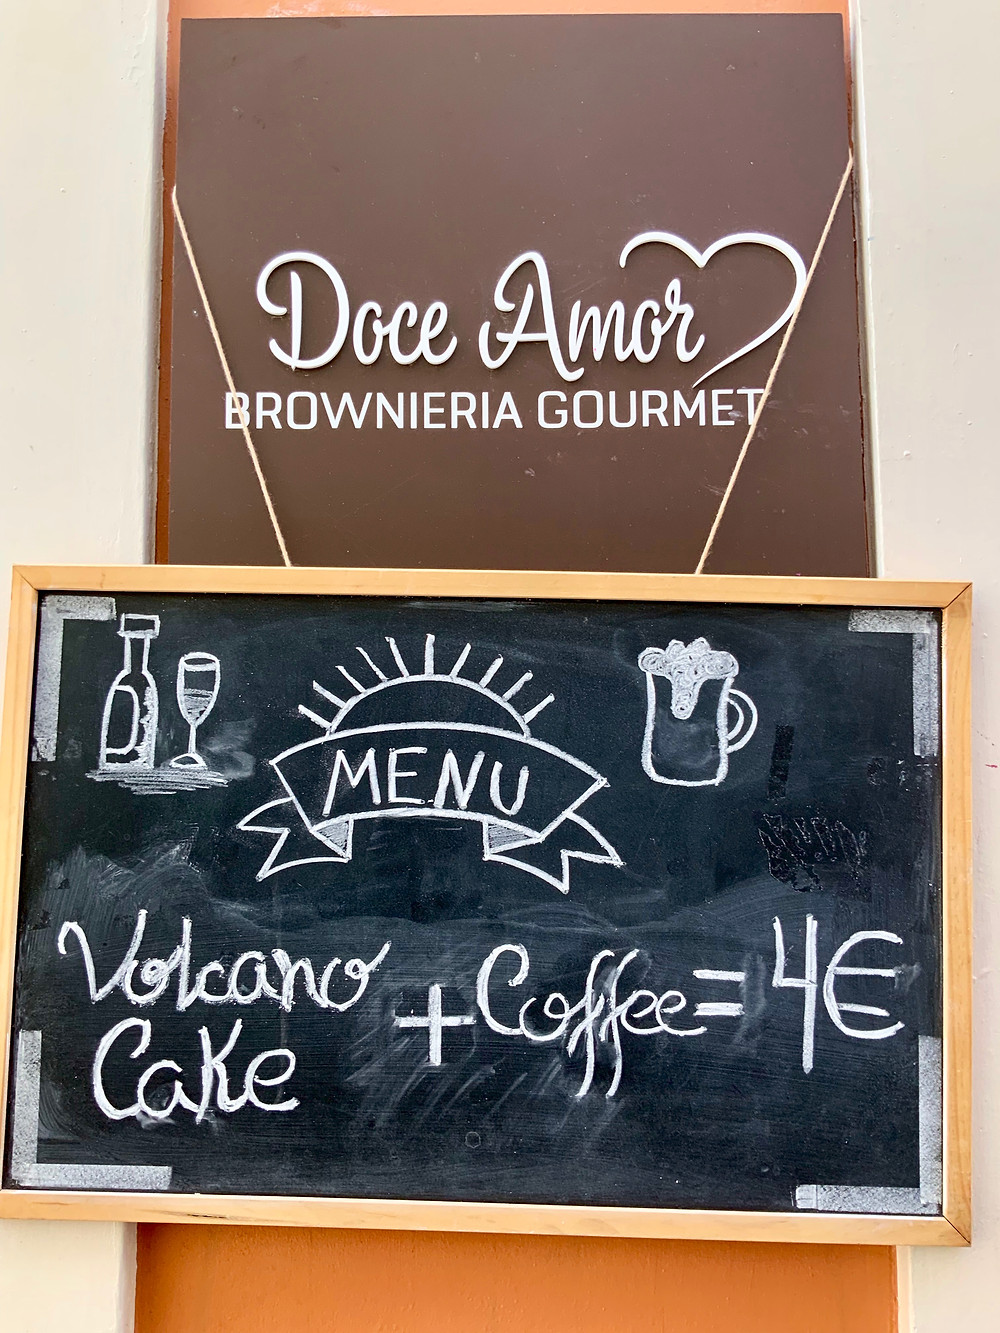 a gourmet brownie shop in Coimbra, Doce Amor